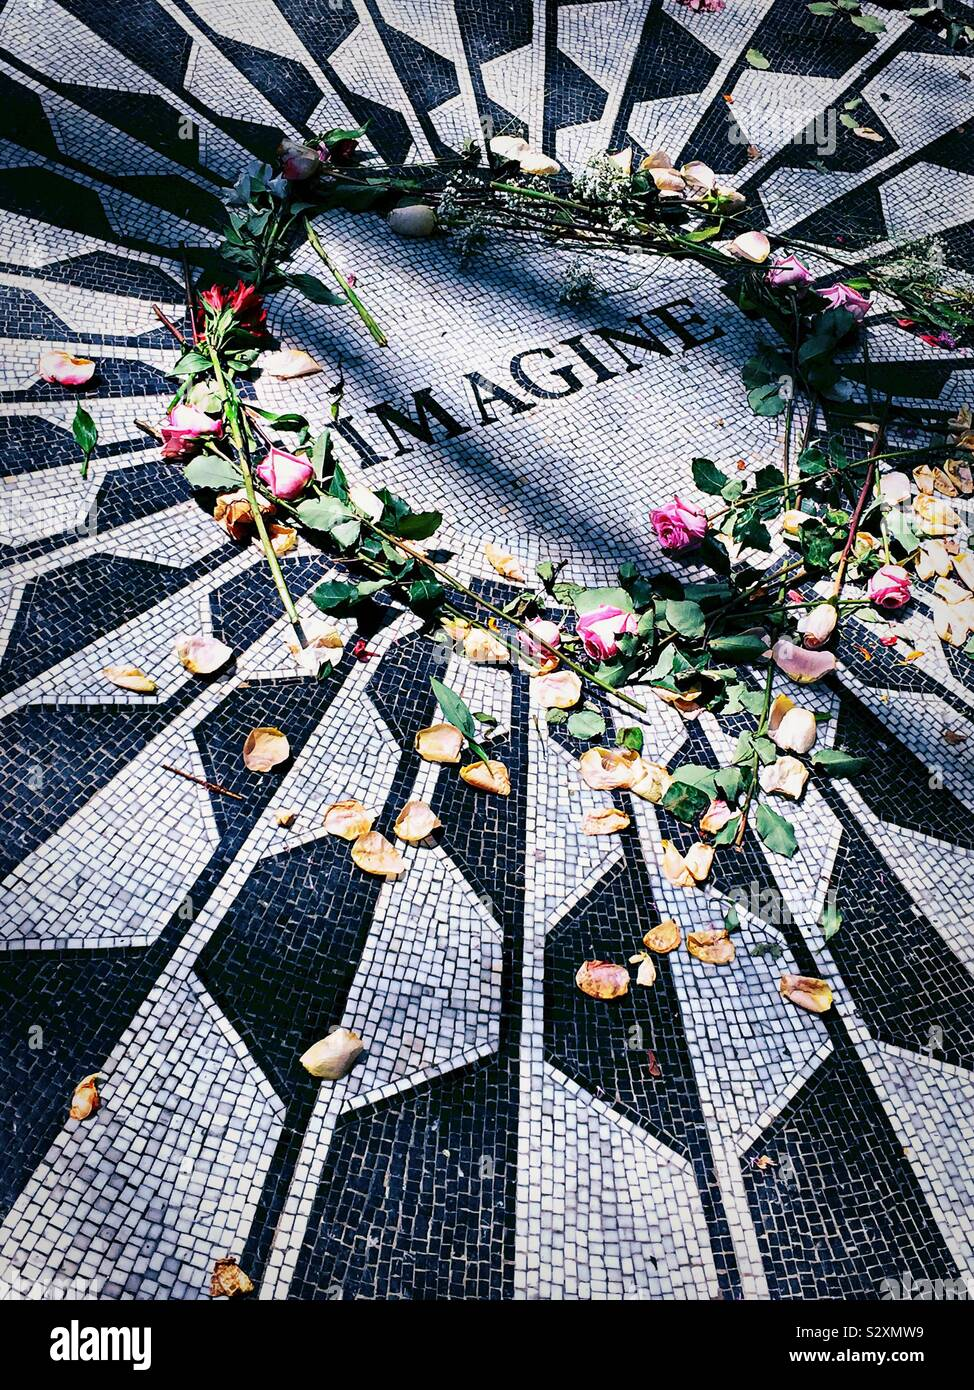 Strawberry Fields Mosaik, Central Park, New York, USA Stockfoto